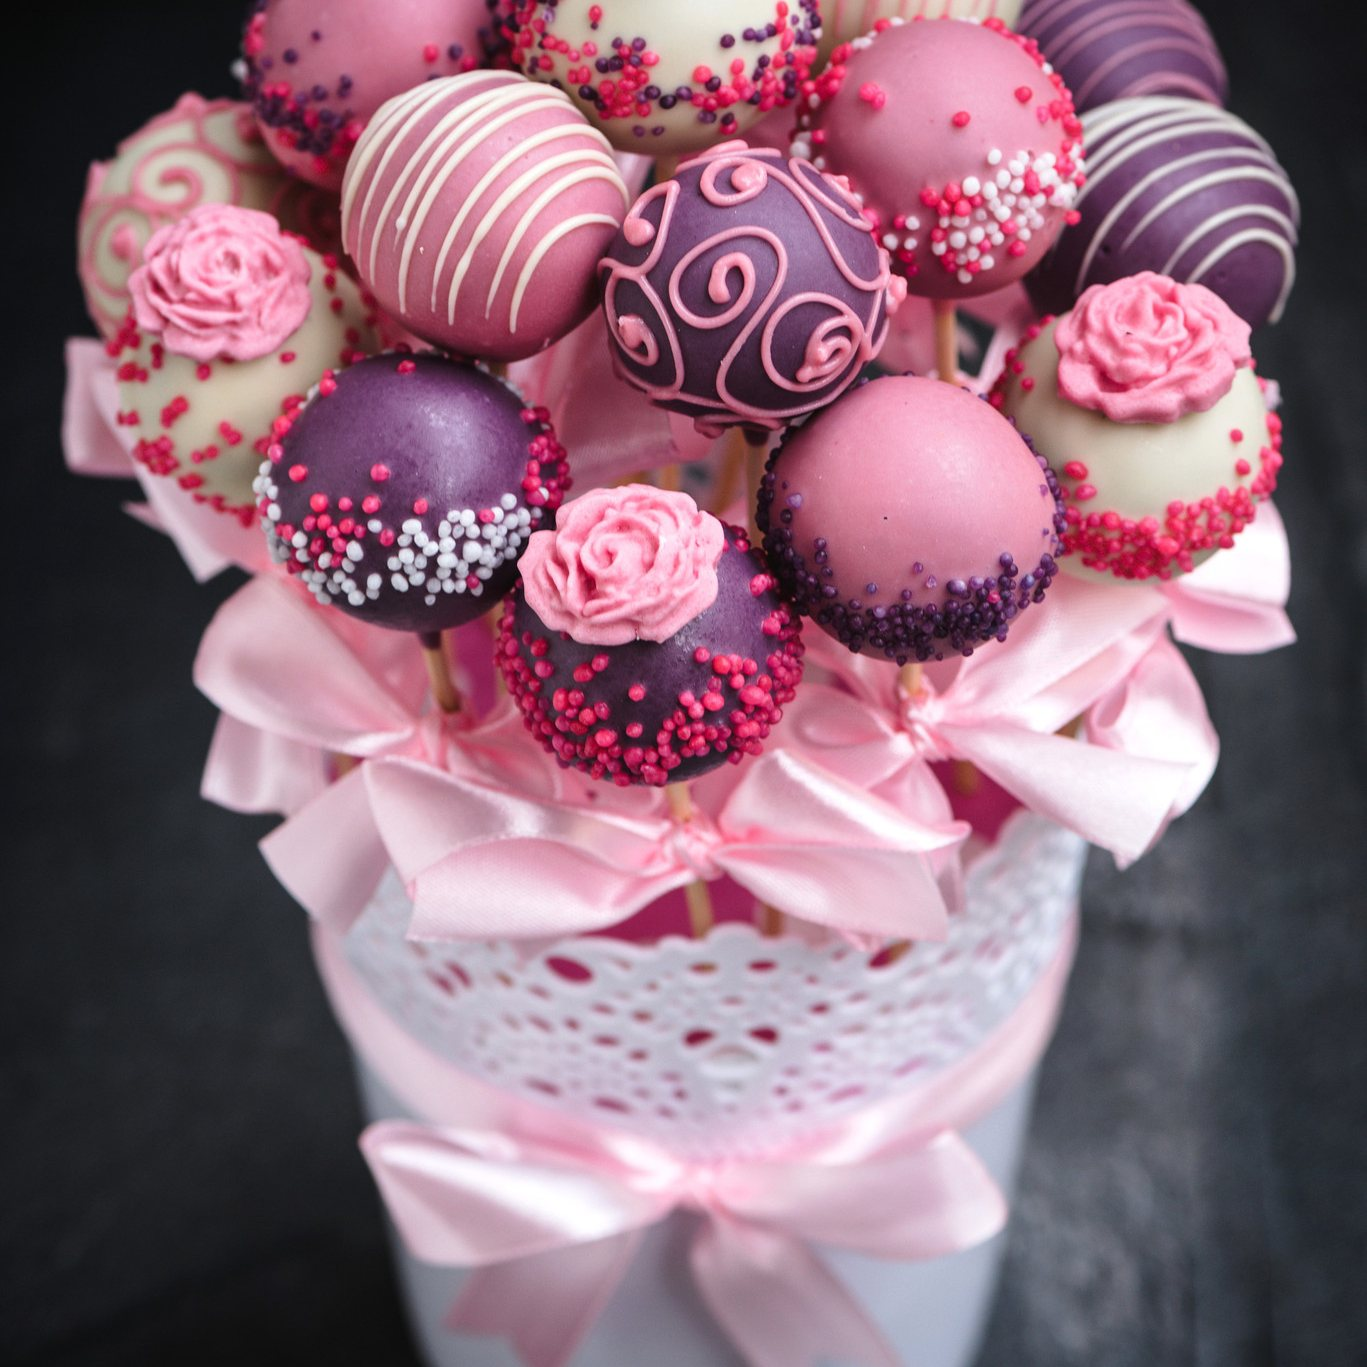 Cake Pops Bouquet Gift for Any Occasion - Yumbles.com